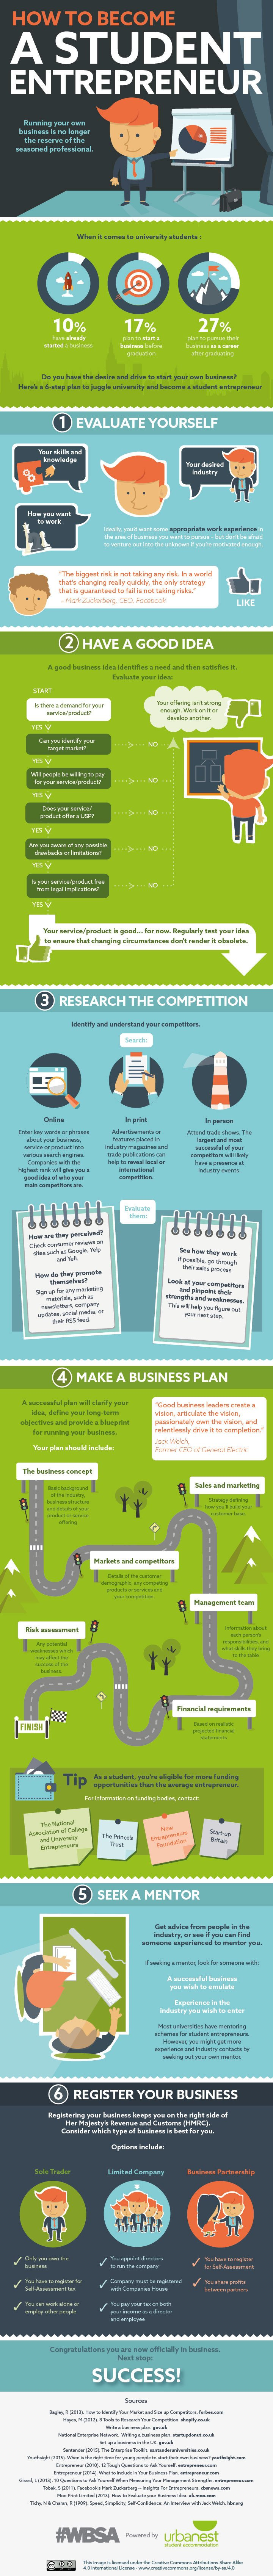 How to Become a Student Entrepreneur Infographic